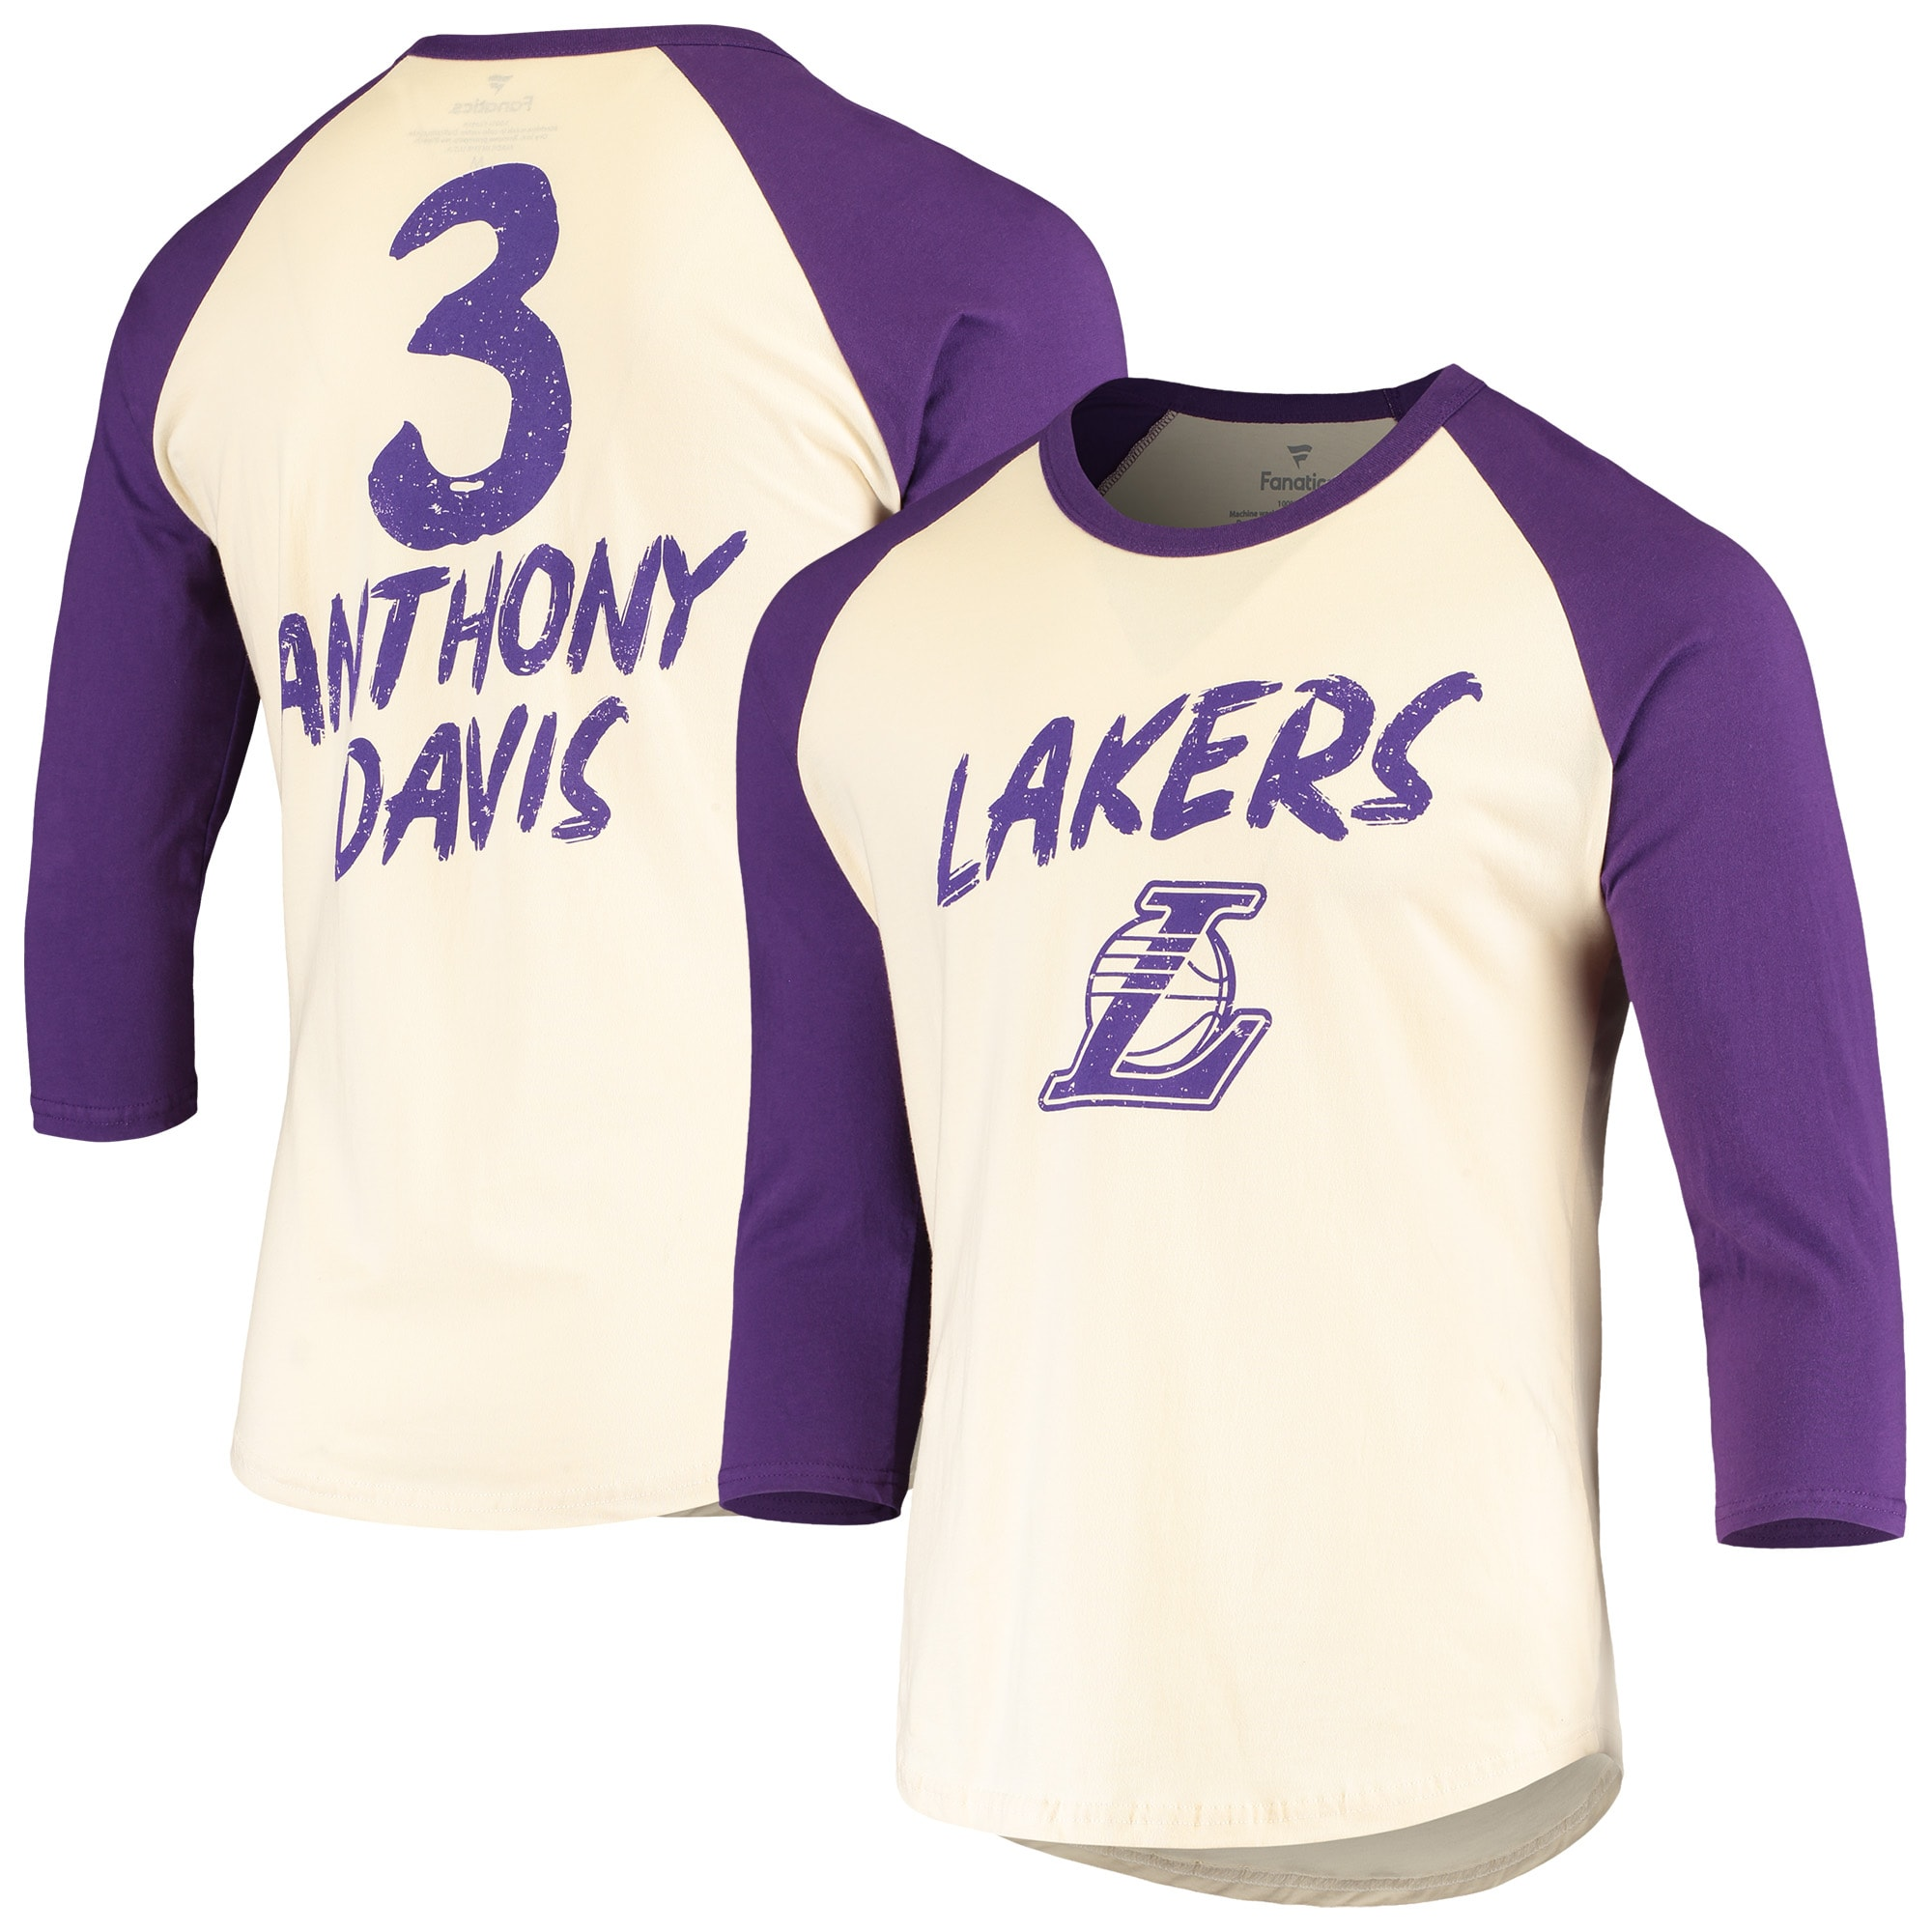 Anthony Davis Los Angeles Lakers Fanatics Branded Raglan 3/4 Sleeve T-Shirt - Cream/Purple